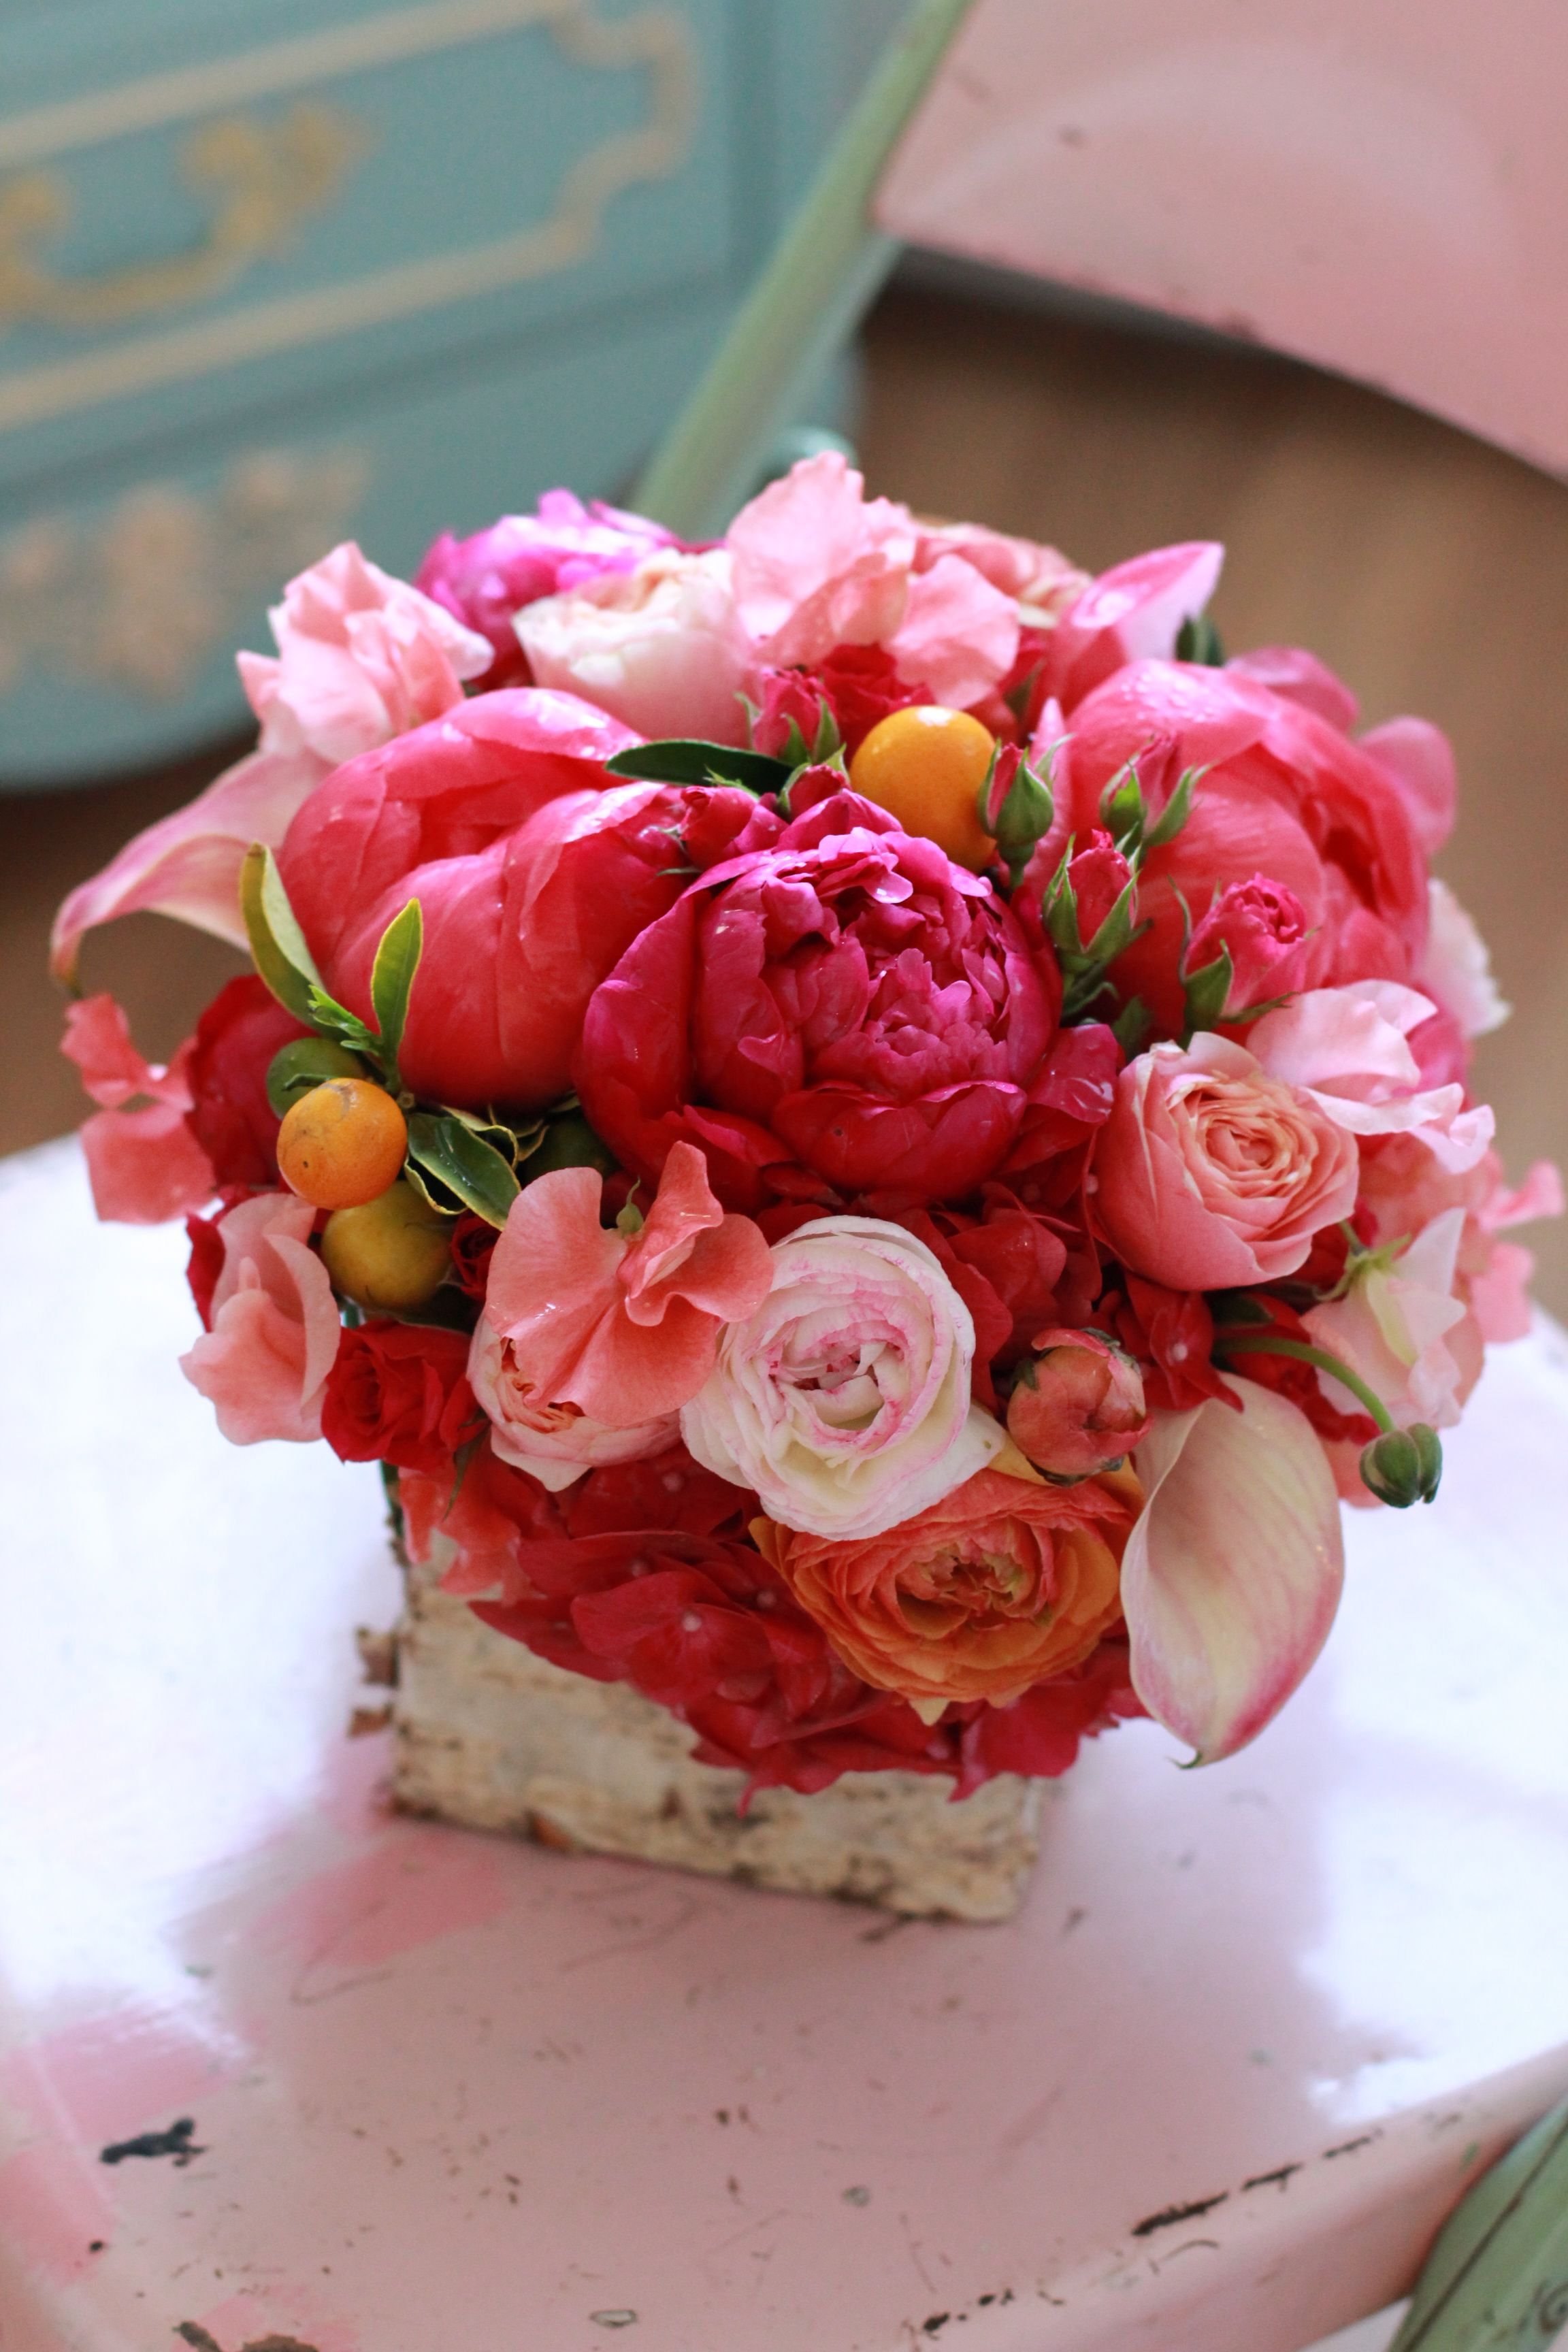 Peach Garden Rose flowerssachi rose. arrangement includes coral peonies, peach